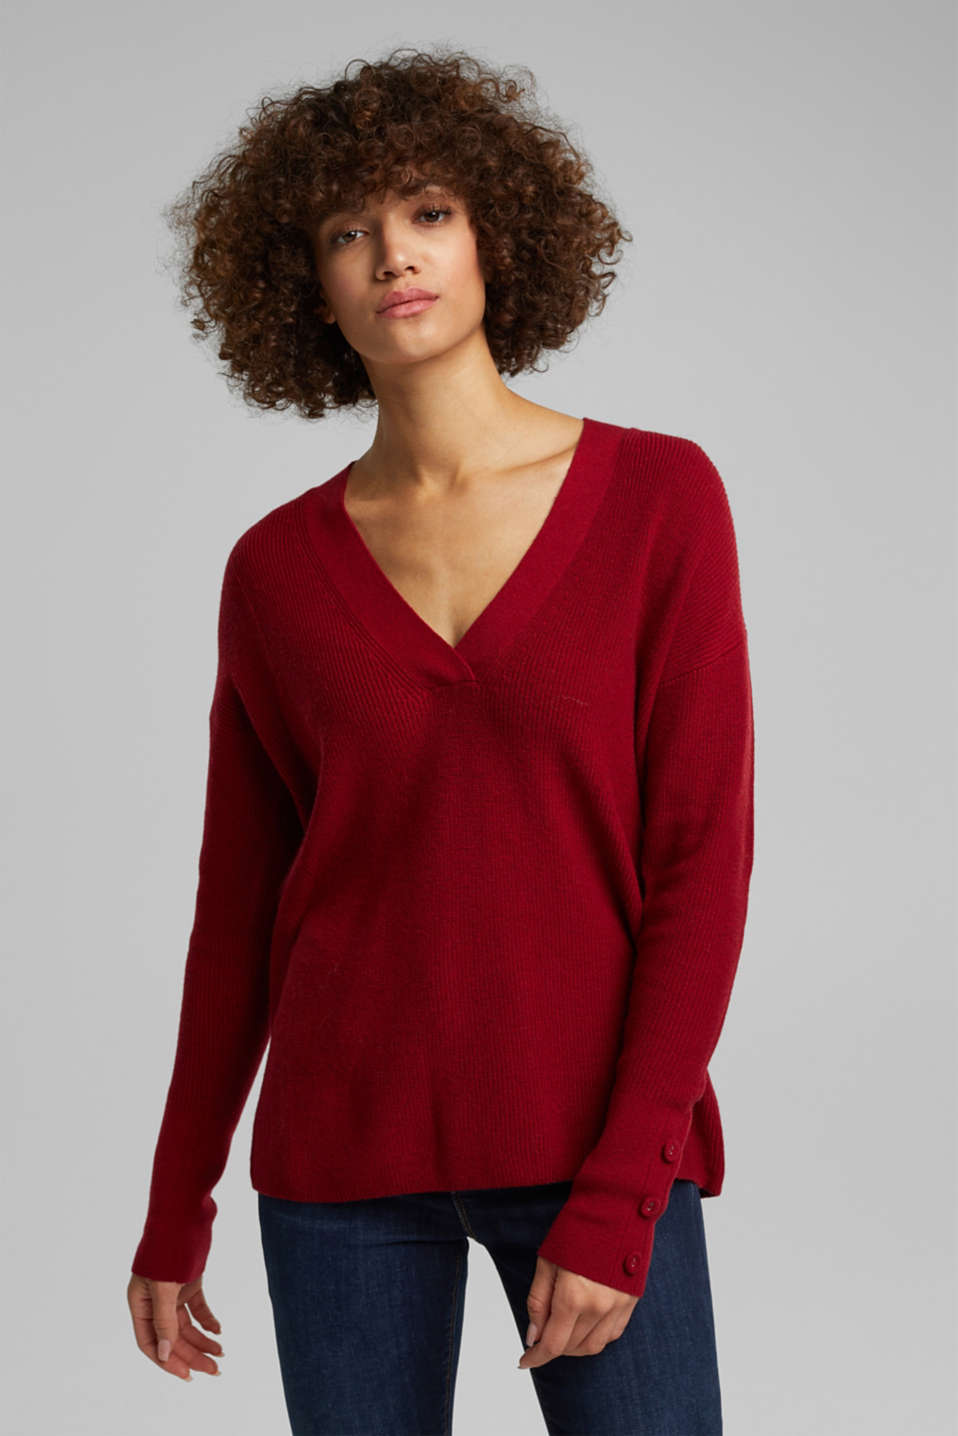 Esprit - With cashmere: jumper with button details